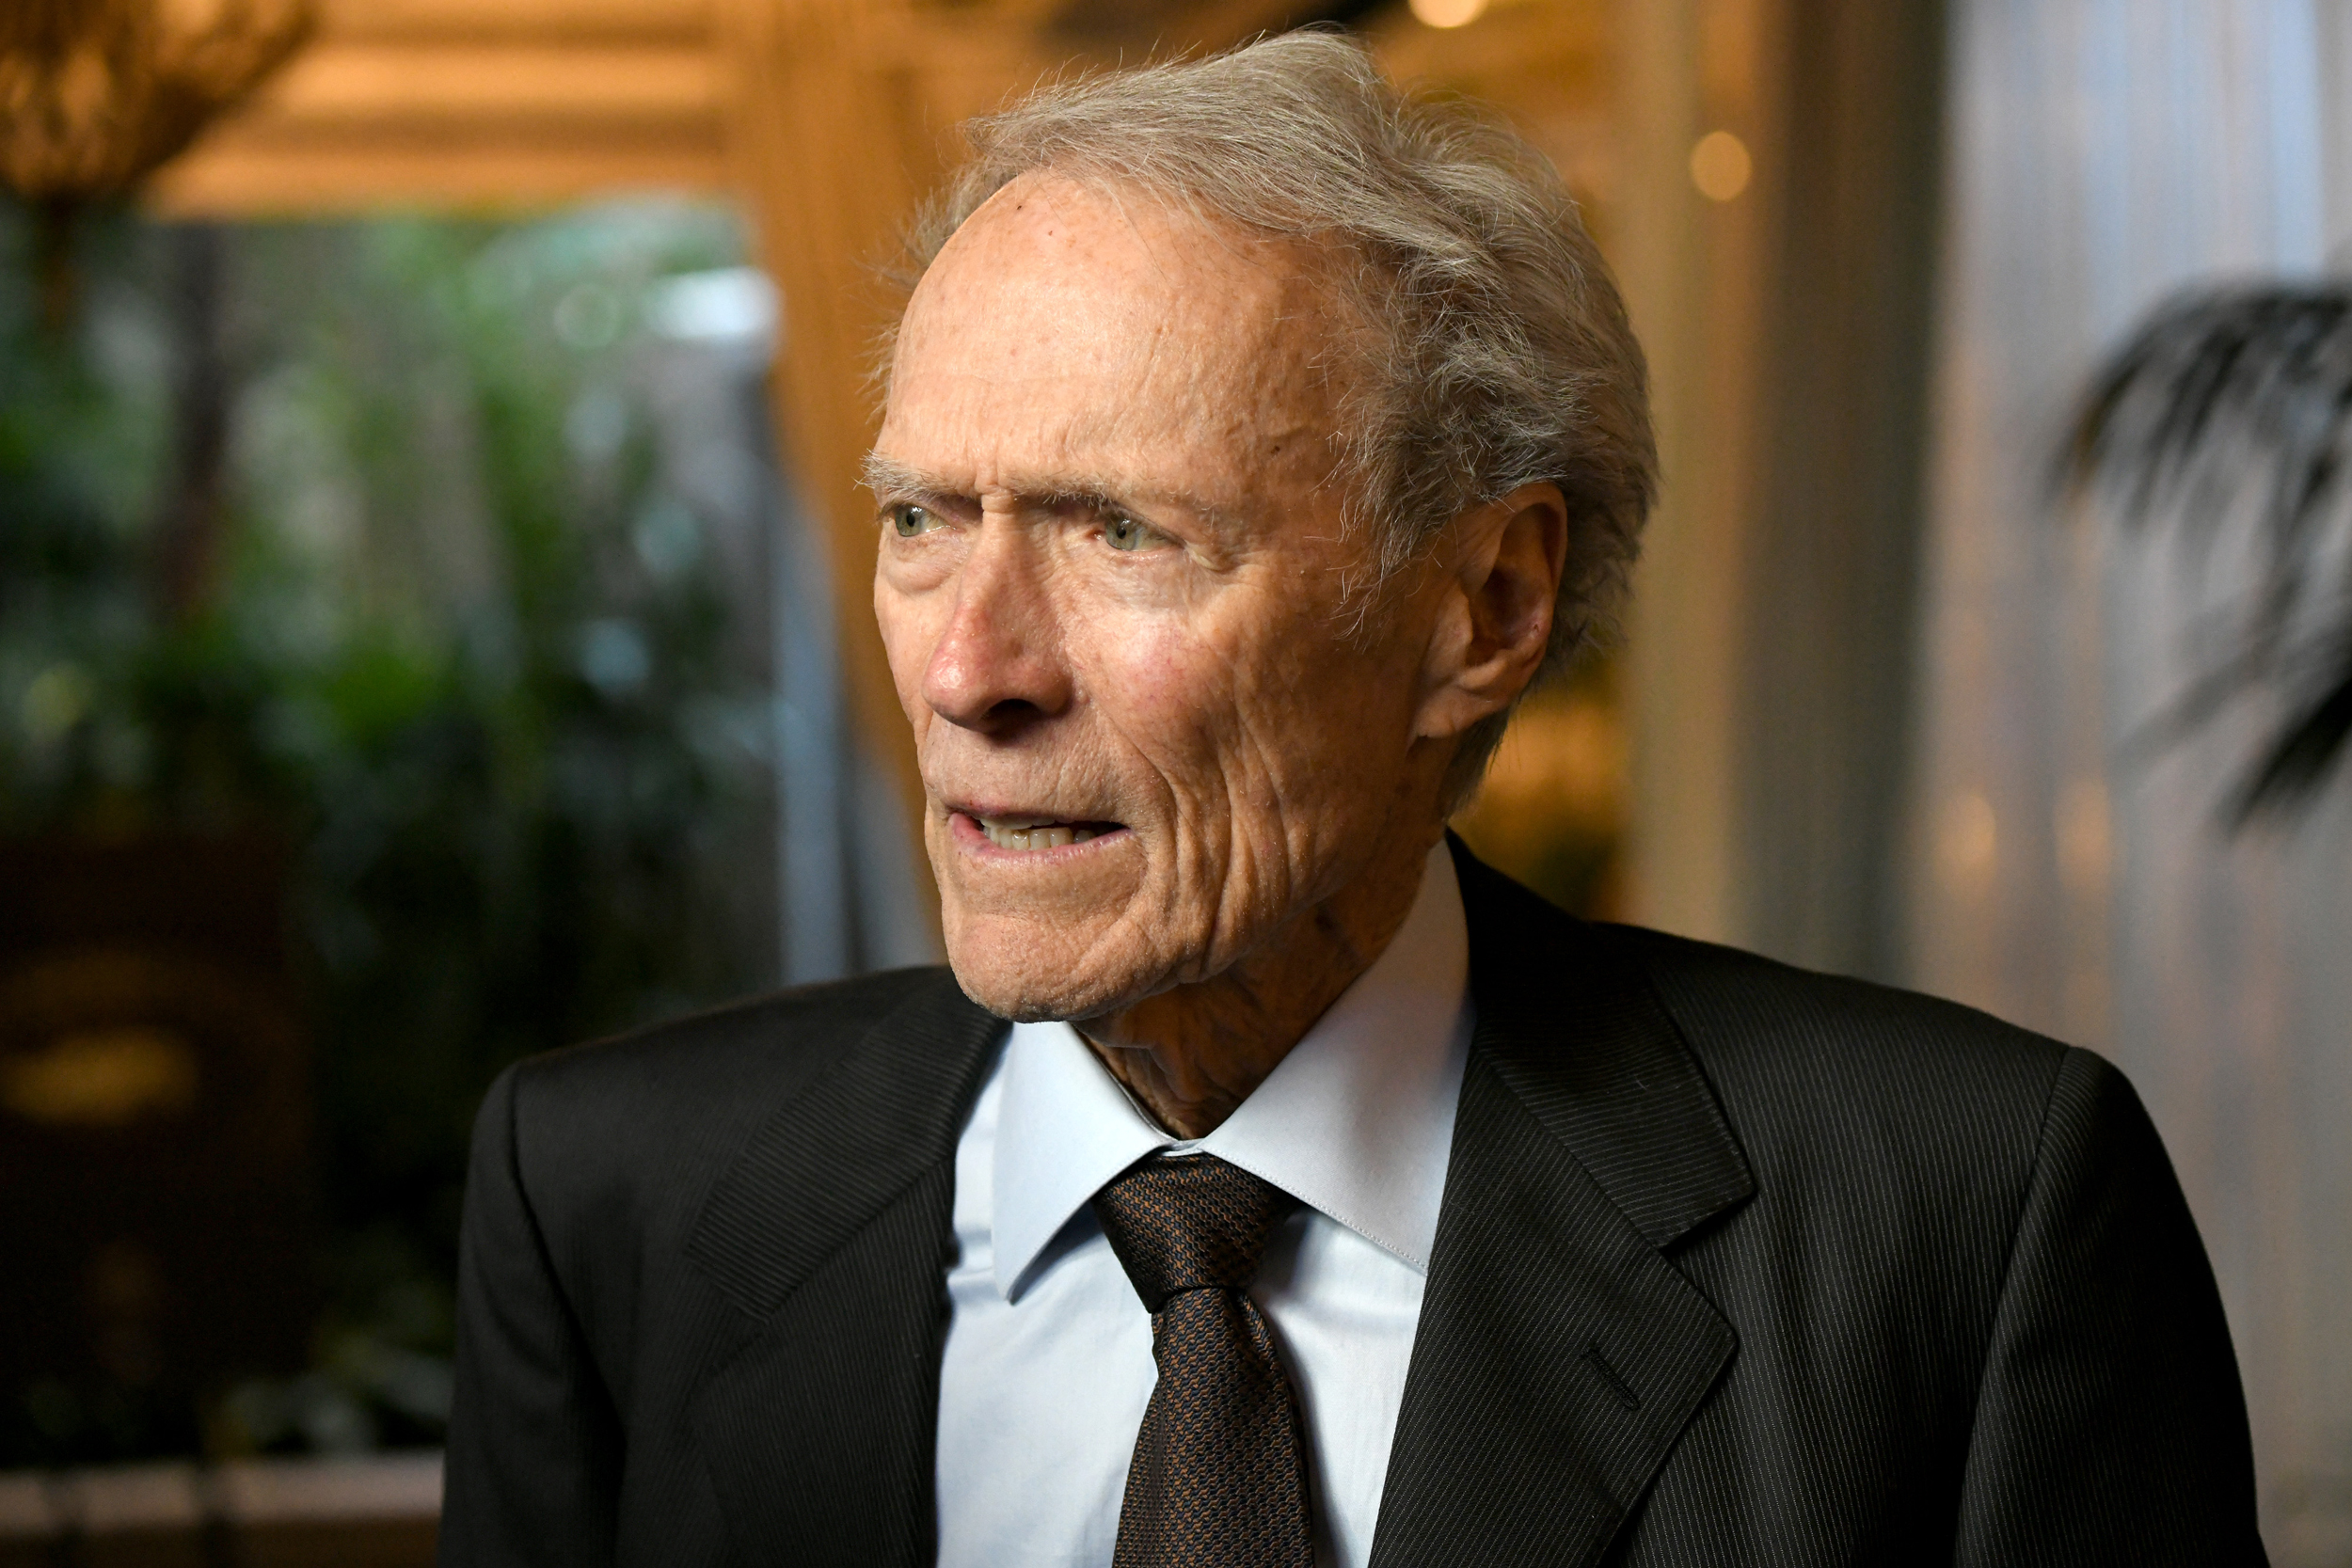 Clint Eastwood llega a los 90 años. Foto: Michael Kovac / Getty Images for AFI